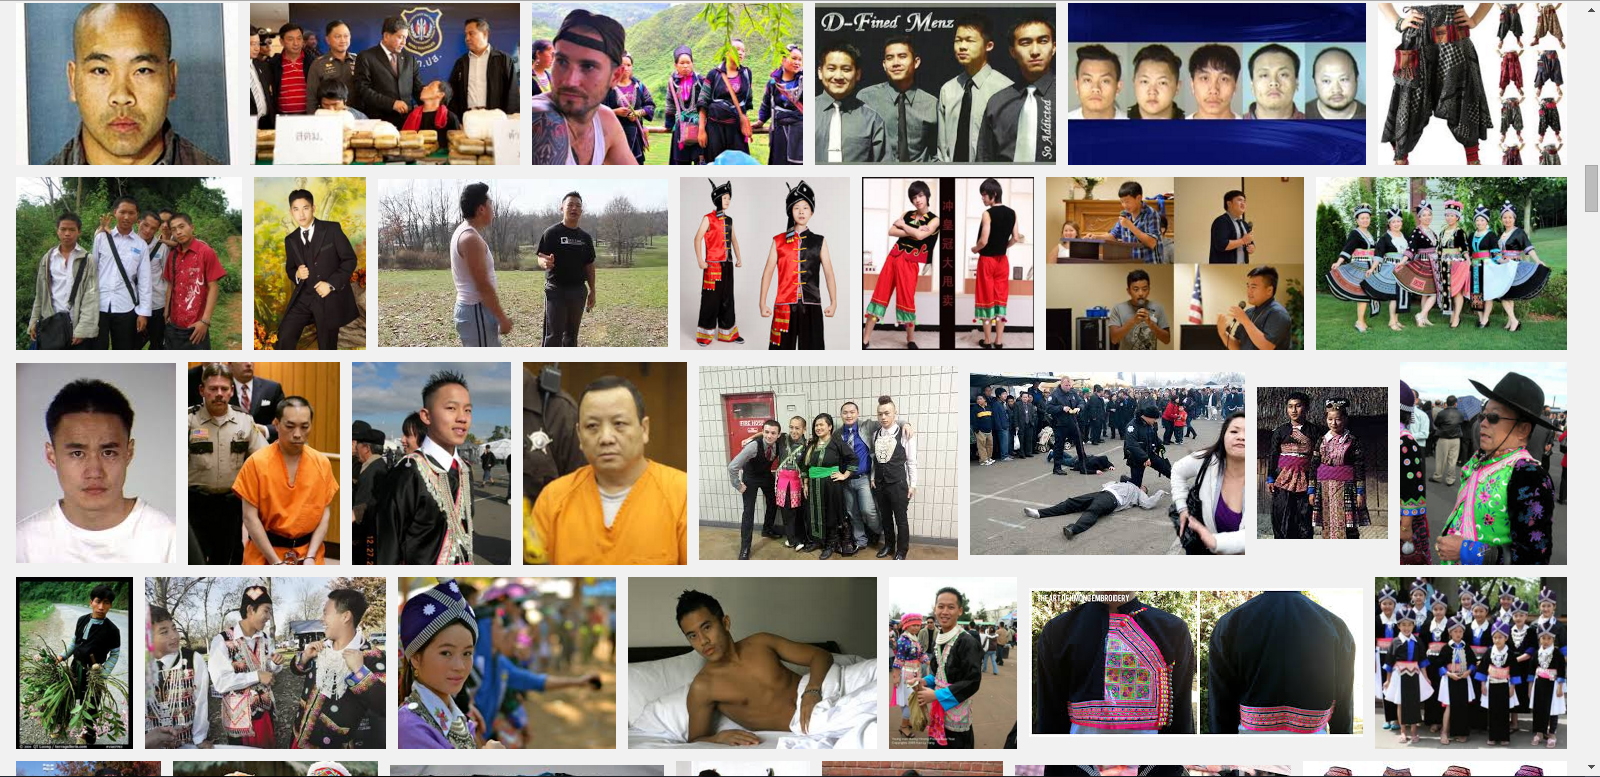 Googling Hmong Men